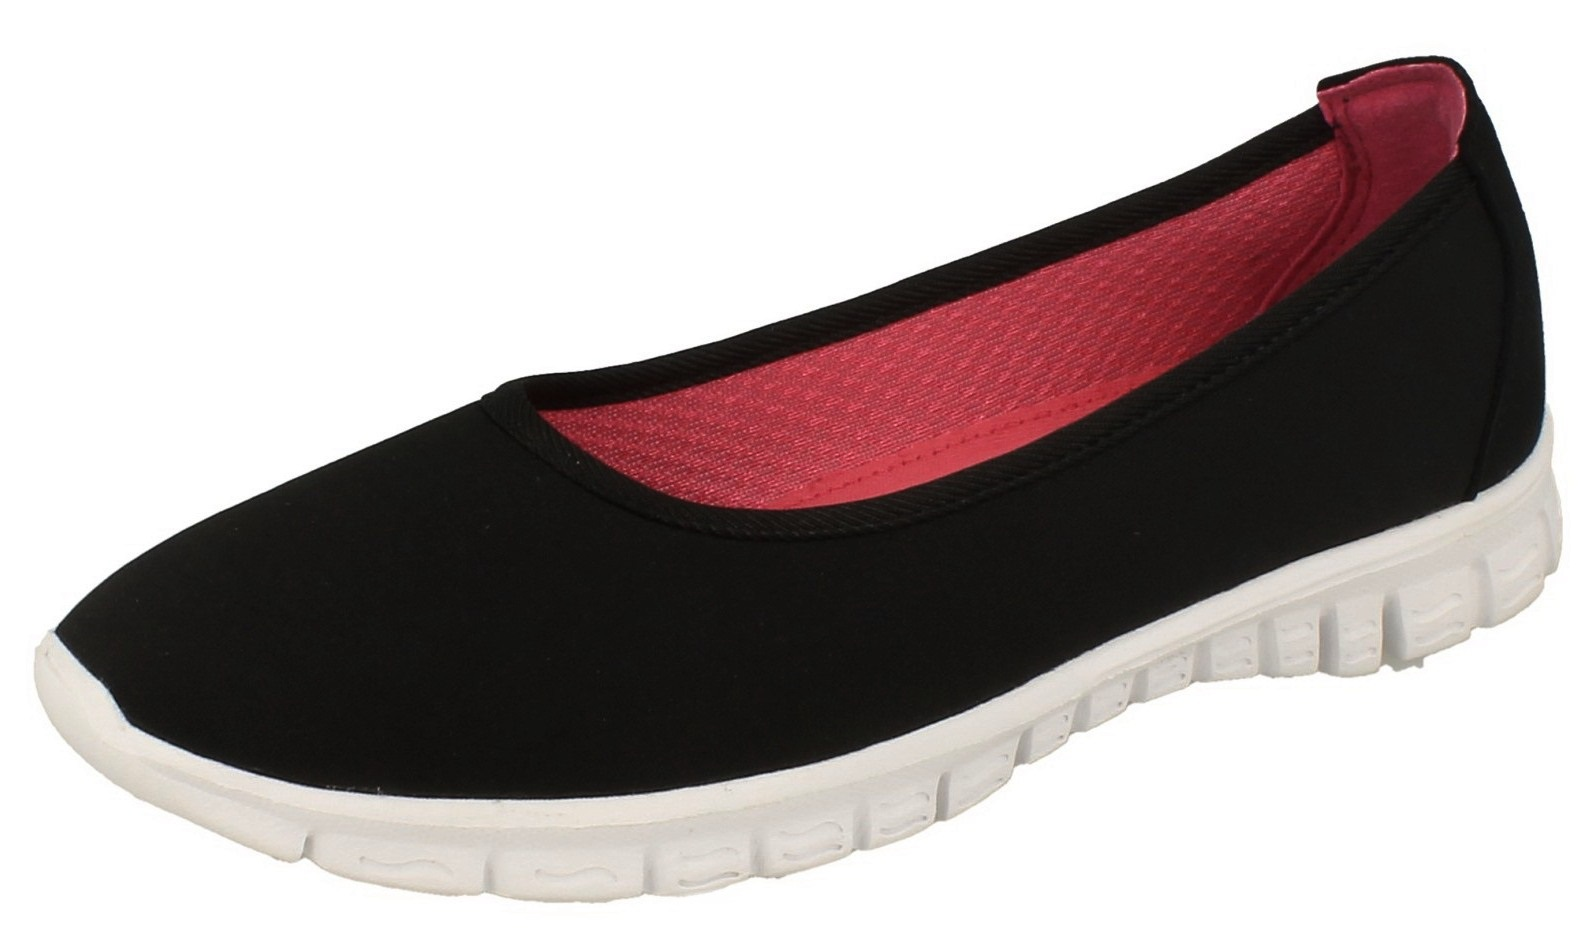 womens slip on lightweight trainers casual comfort walking